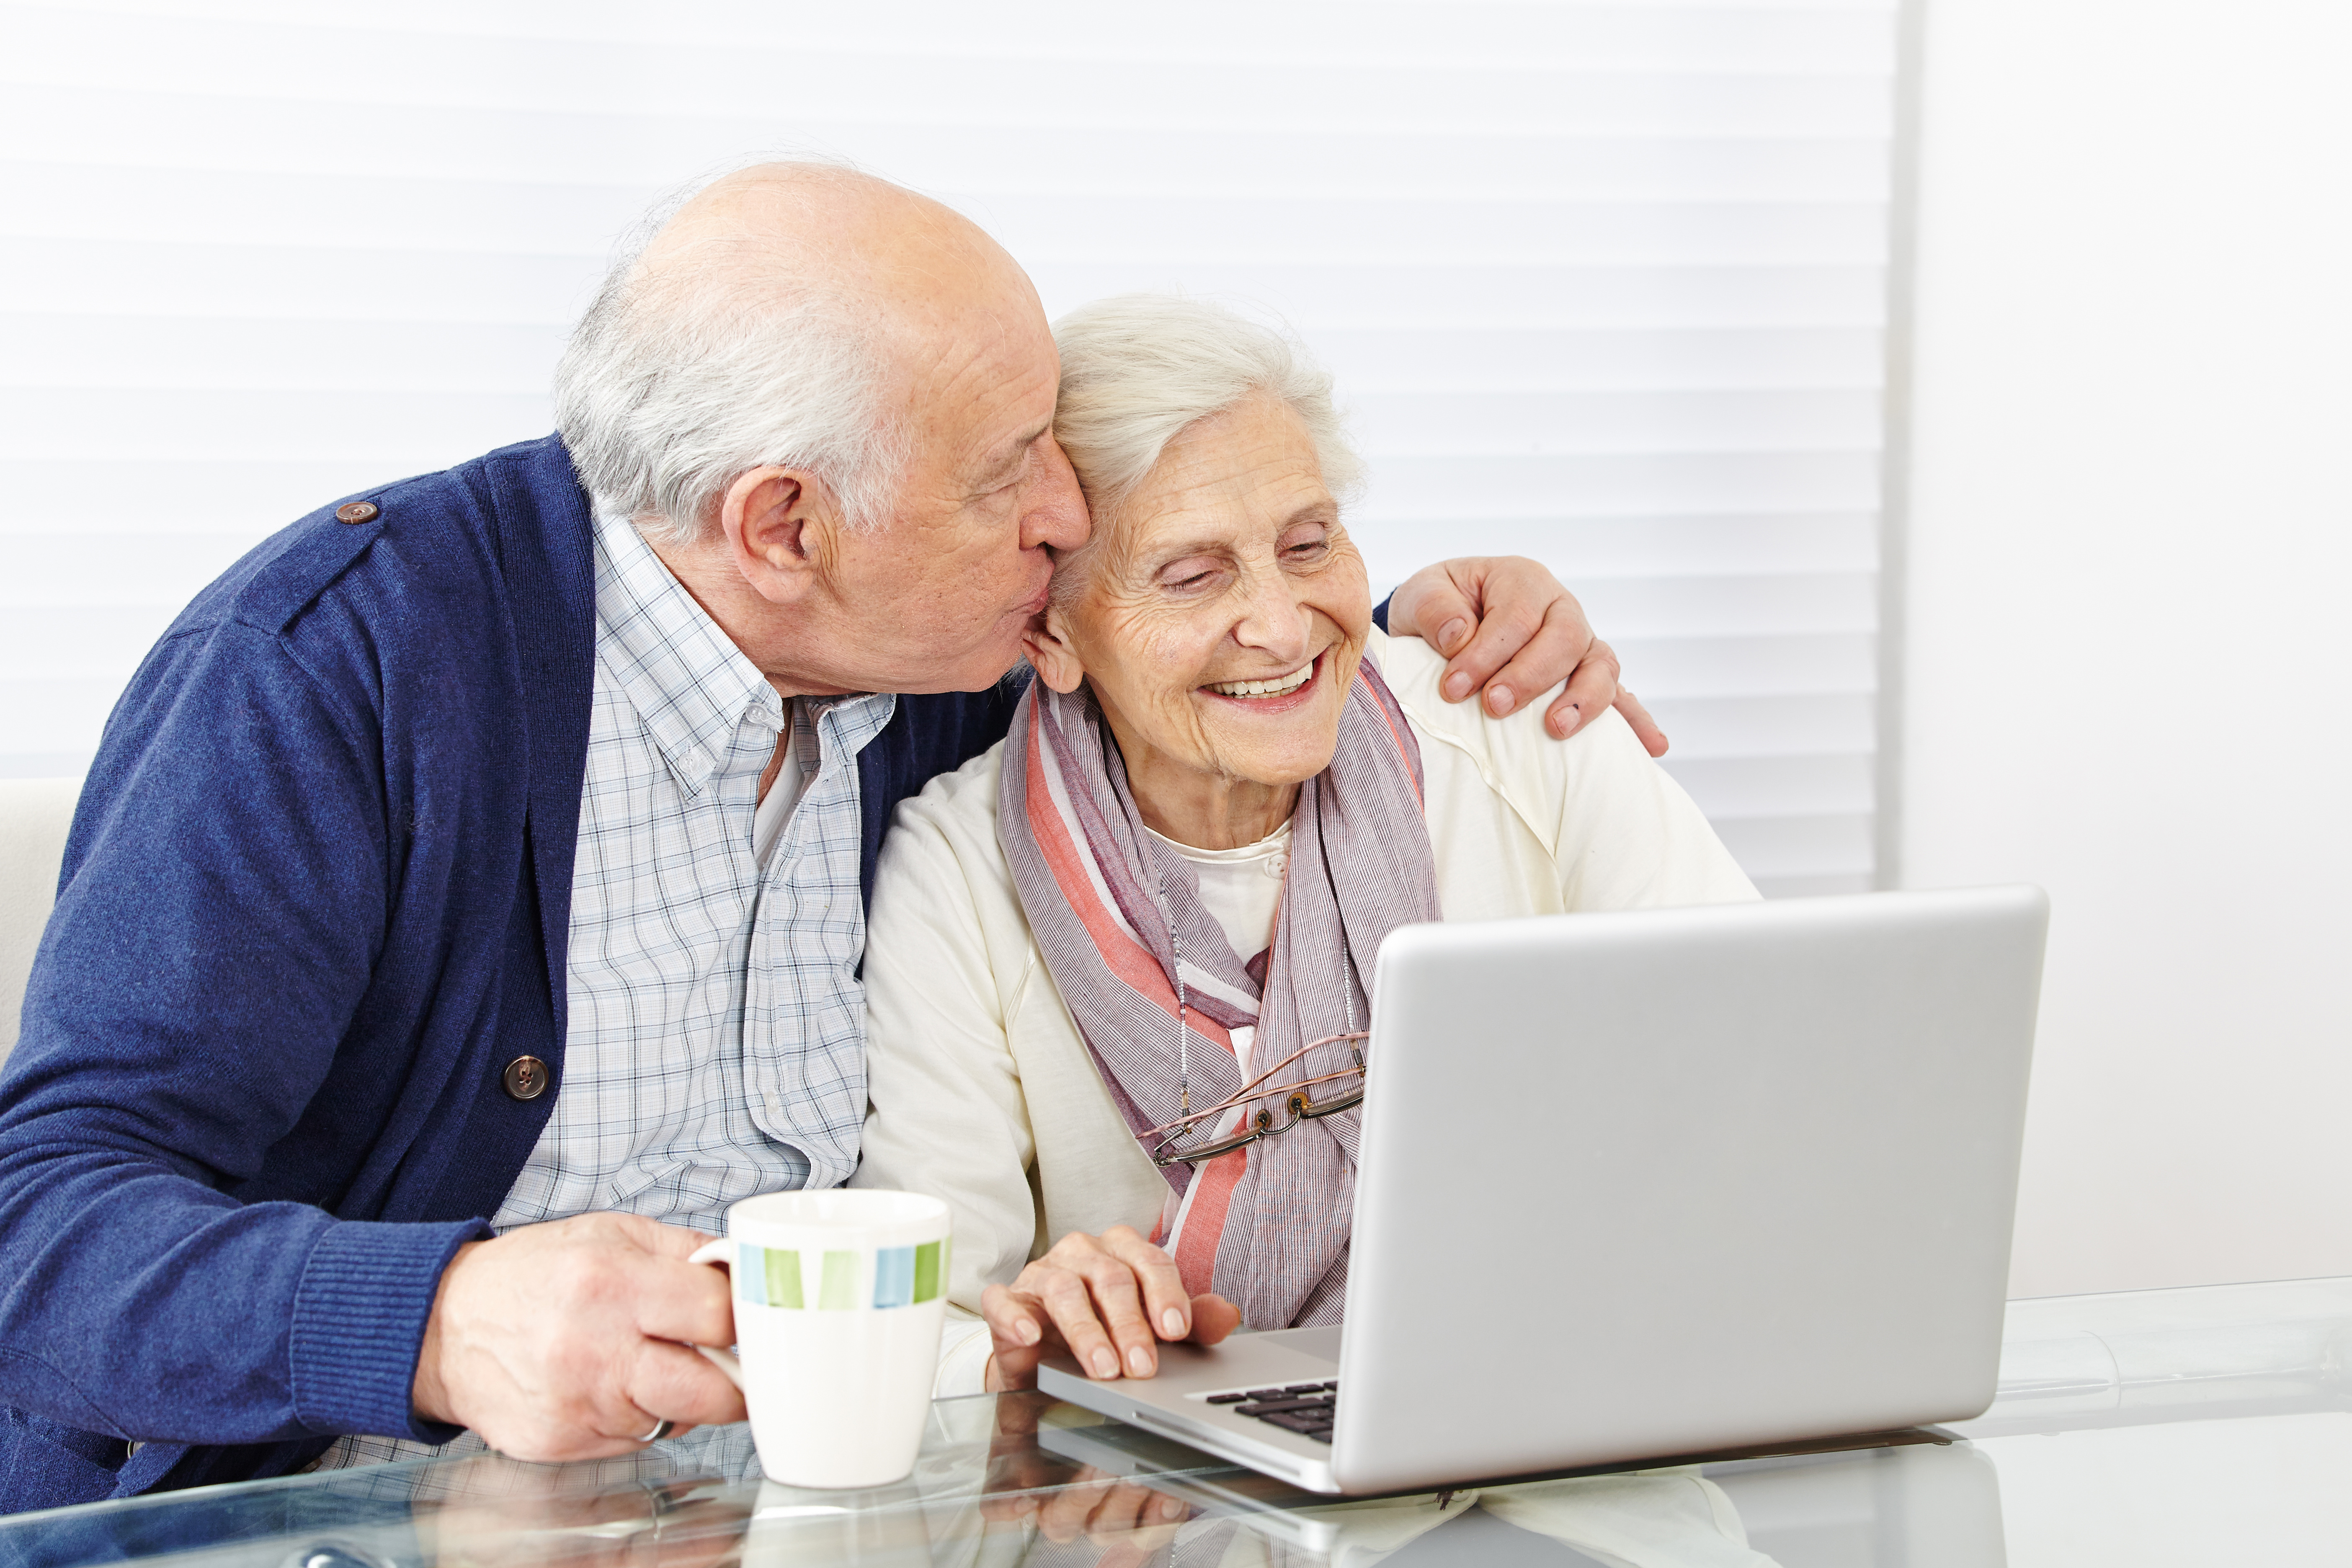 Online dating for older adults